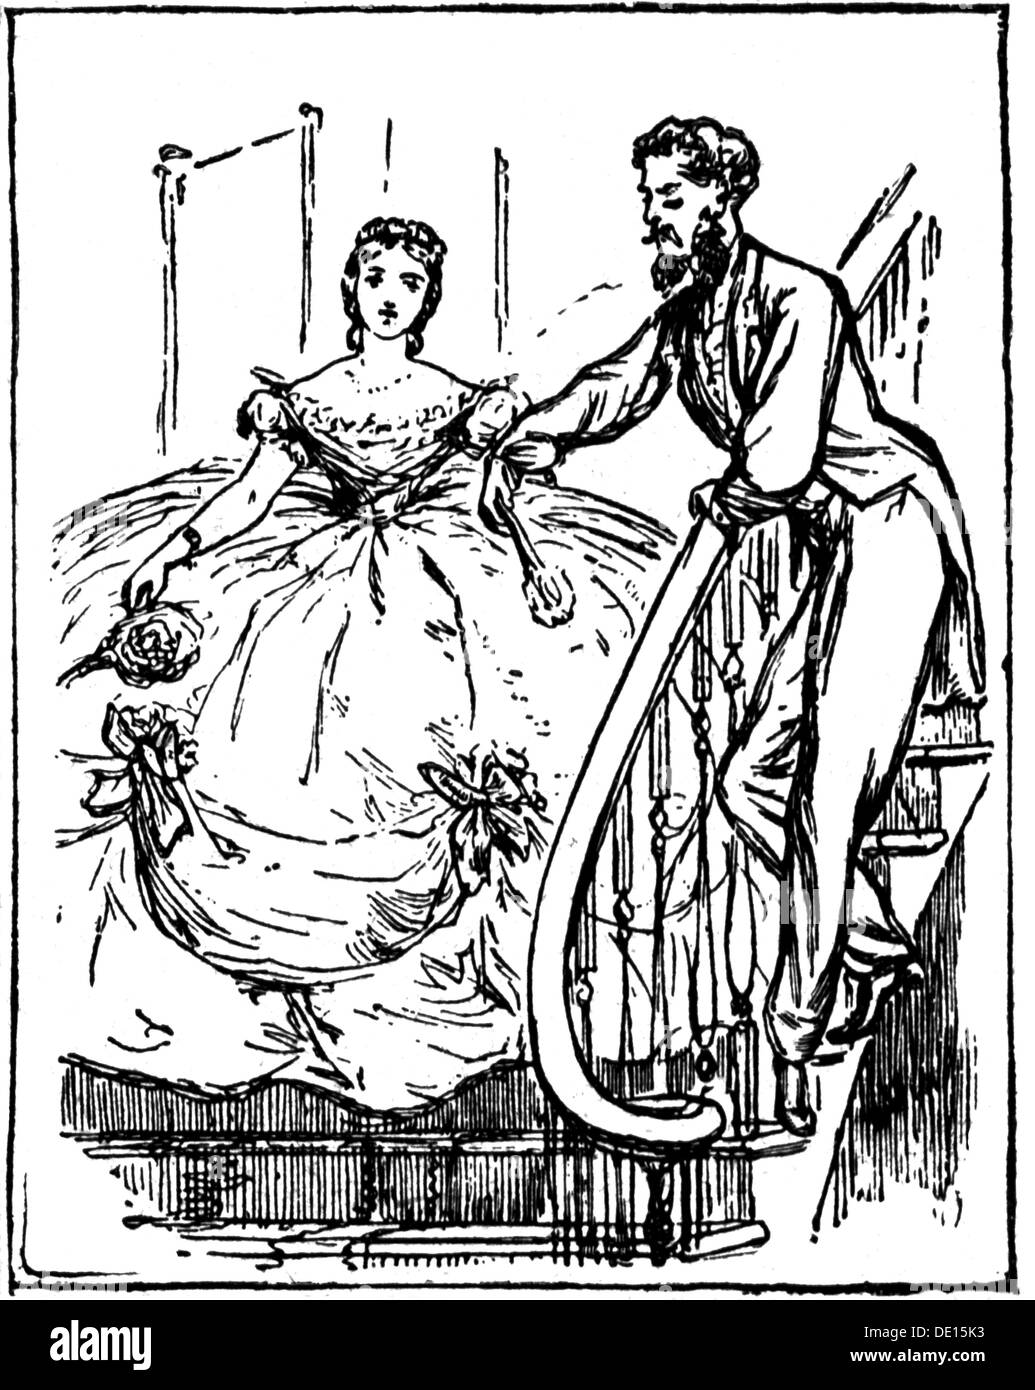 fashion, 19th century, woman in dress with crinoline, wood engraving, family magazine, 1840, Additional-Rights-Clearences-NA - Stock Image